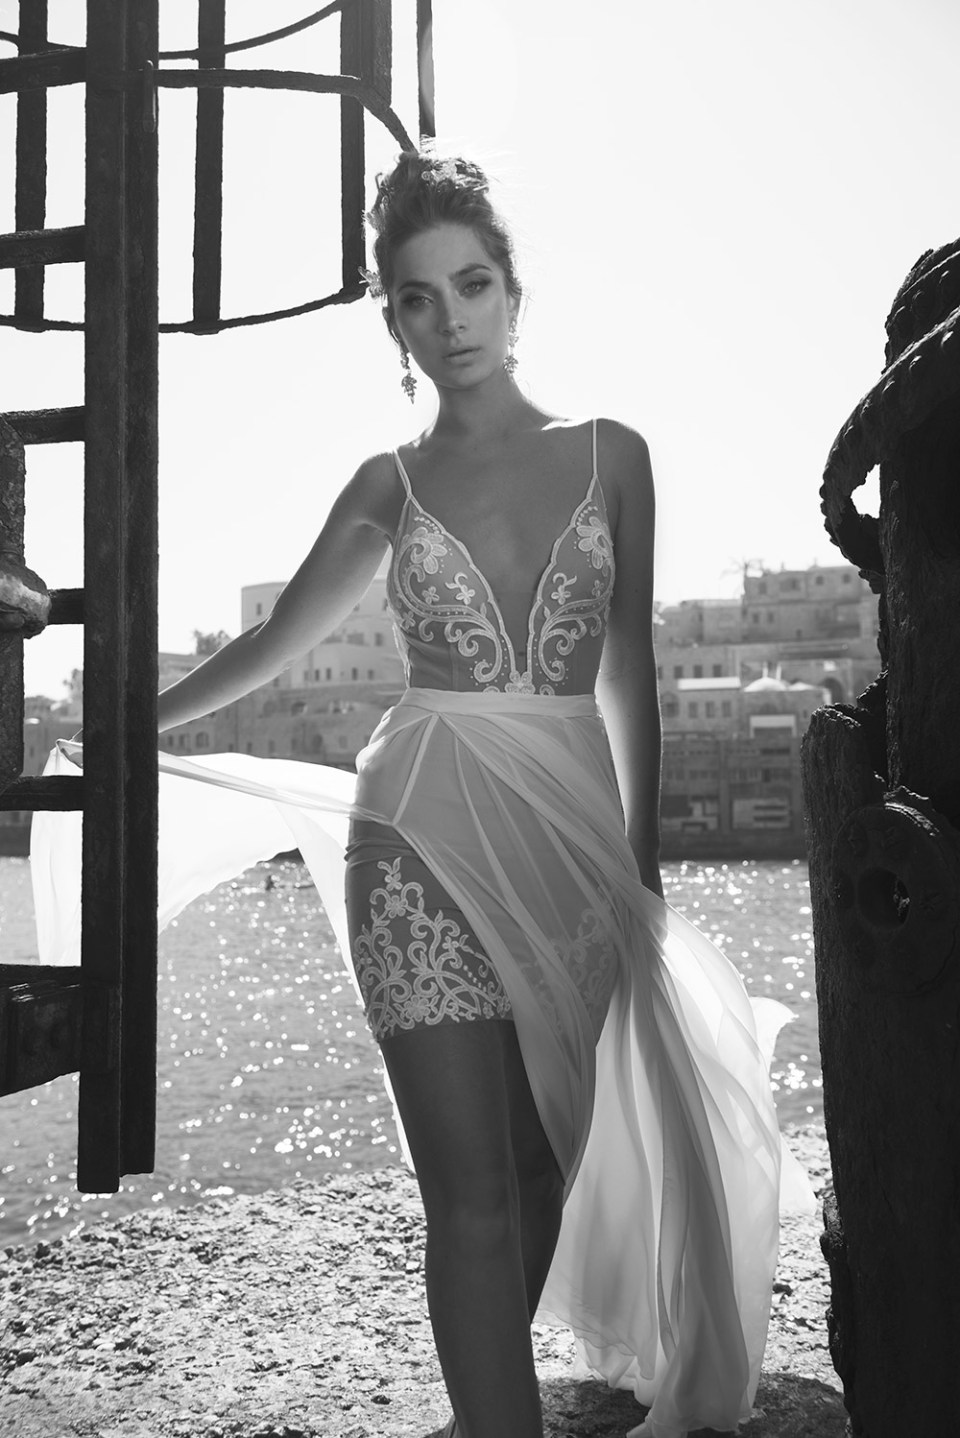 A&J Designers by Adi Shiomo and Julie Vino 2016 Bridal Collection. www.theweddingnotebook.com